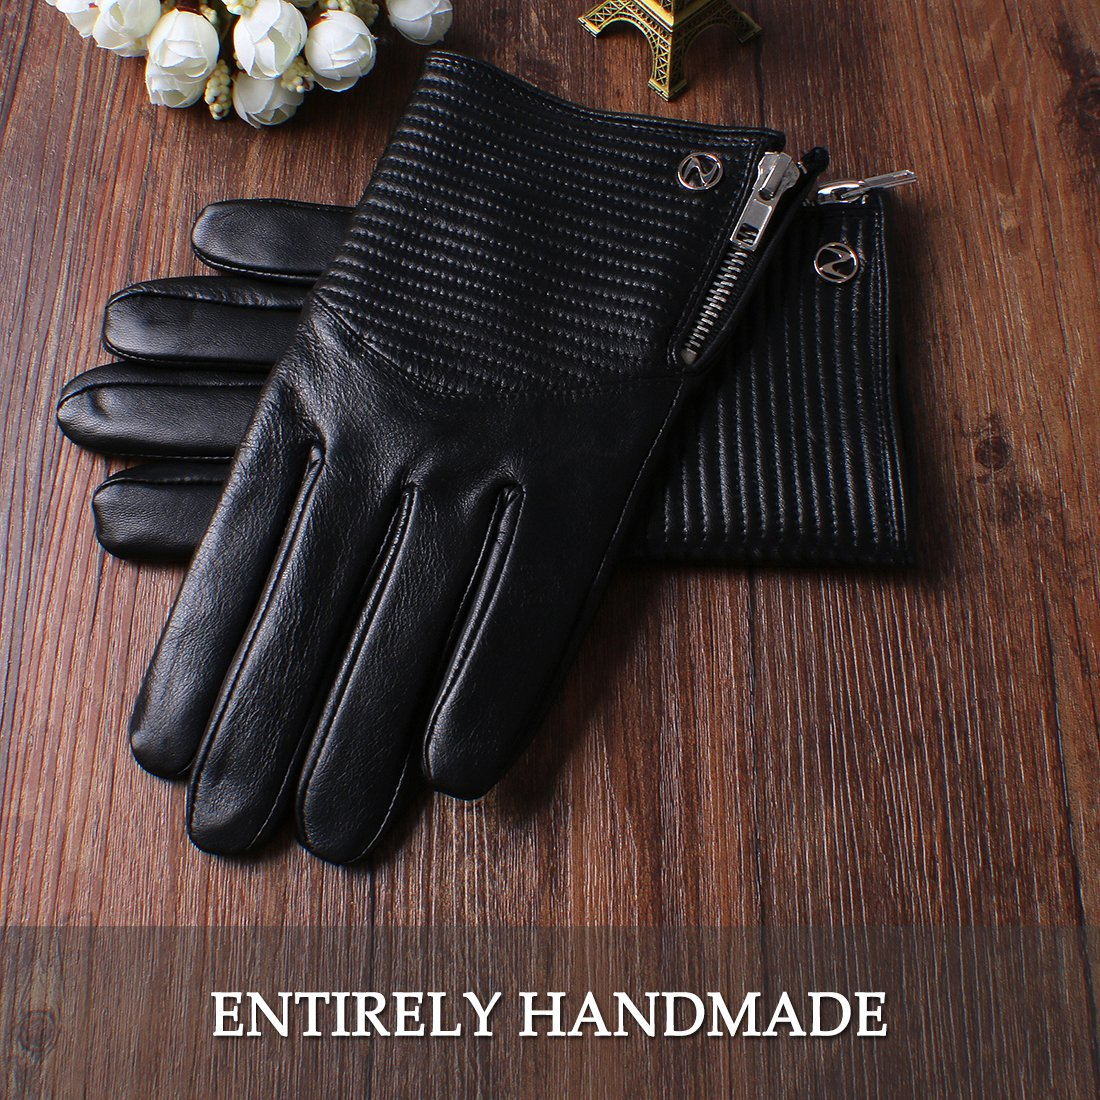 Nappaglo Men's Genuine Nappa Leather Gloves Touchscreen Winter Warm Driving Cycling Mittens with Metal Zipper (M (Palm Girth:8''-8.5''), Black (Touchscreen)) by Nappaglo (Image #4)